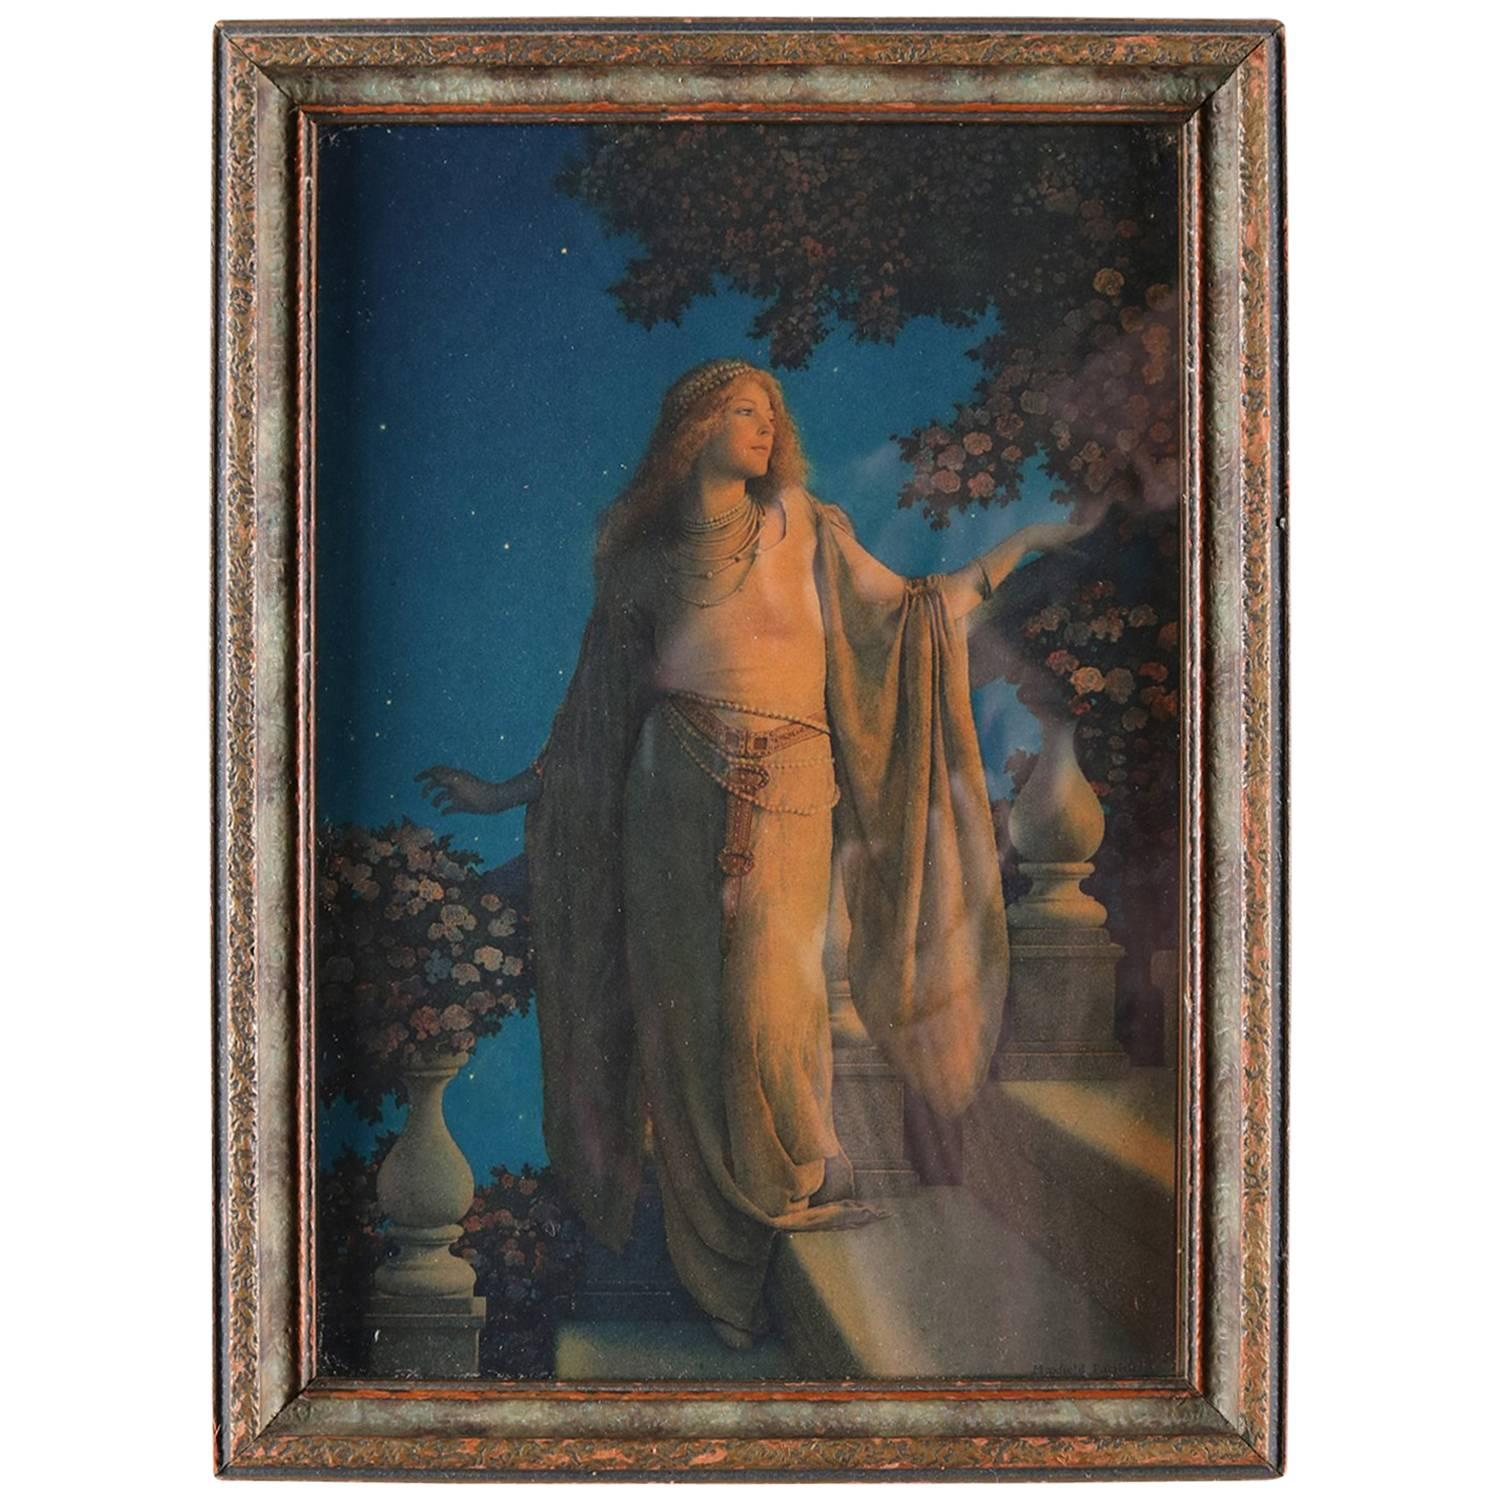 Art Deco Framed Print Of Enchantment After Original By Maxfield Parrish At 1stdibs